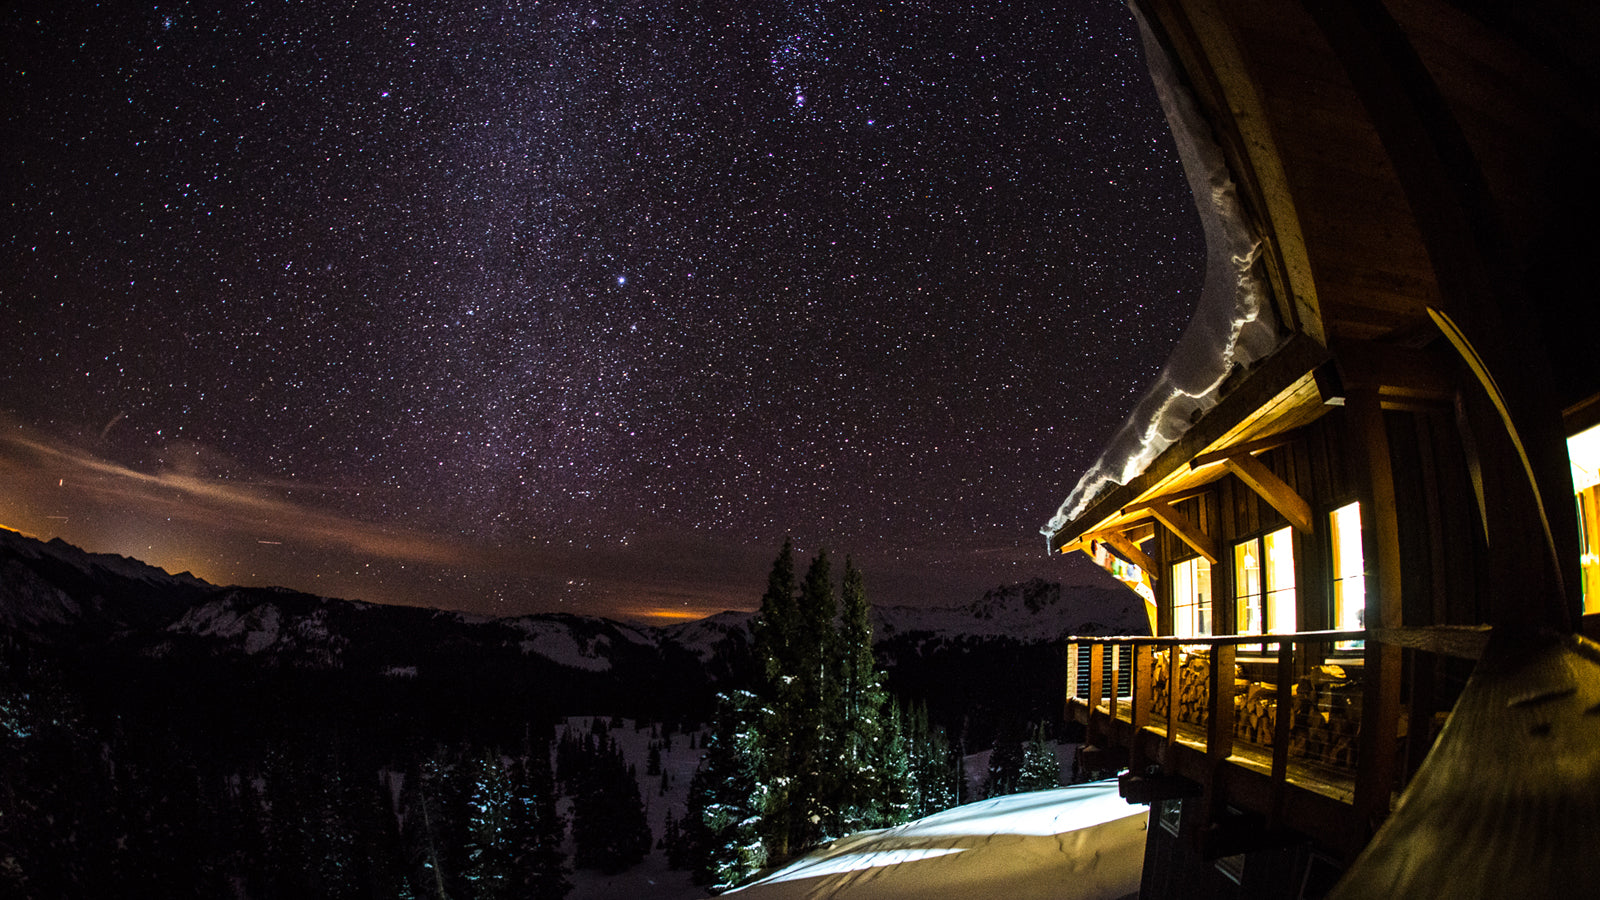 Starry sky over Opa's hut